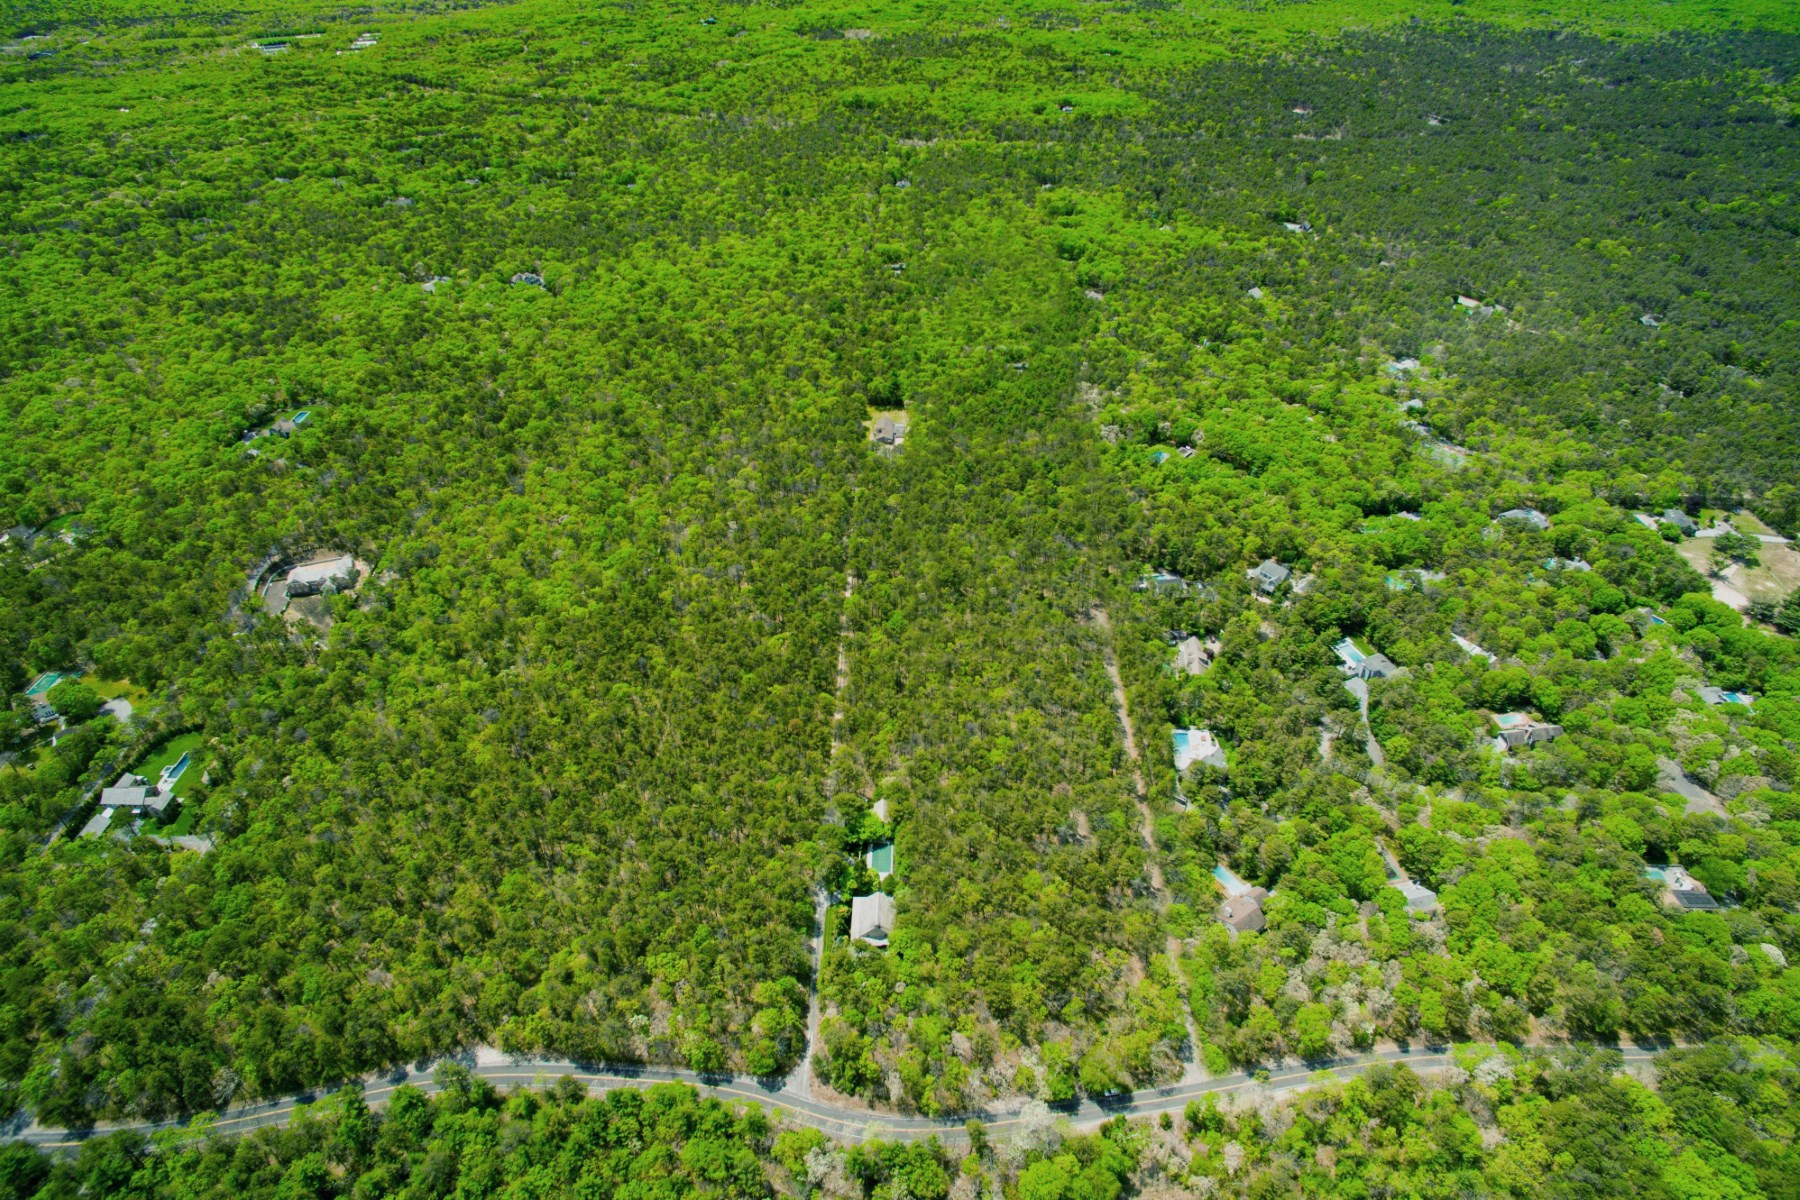 Land for Sale at NORTHWEST ACREAGE IN PRIVATE SUBDIVISION 139 Springy Banks, Lot 1 East Hampton, New York, 11937 United States